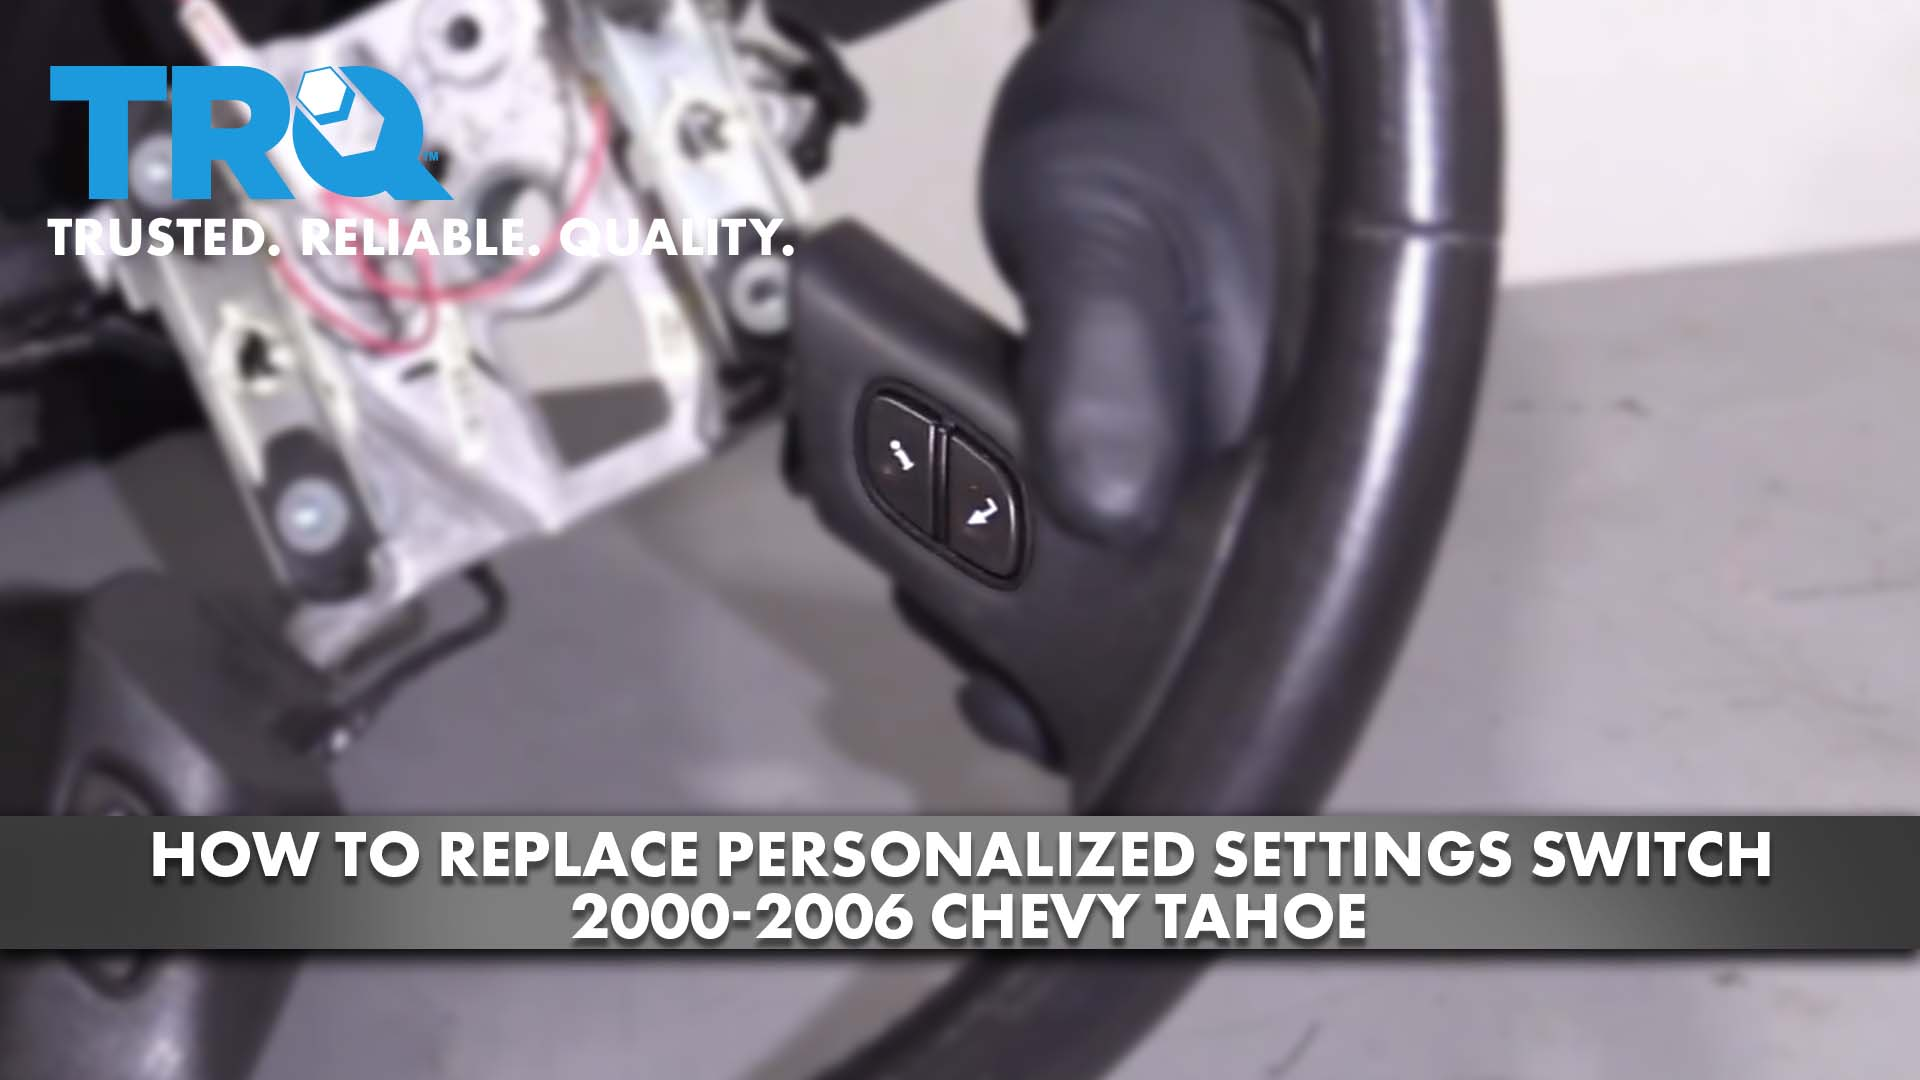 How To Replace Personalized Settings Switch 2000-06 Chevy Tahoe